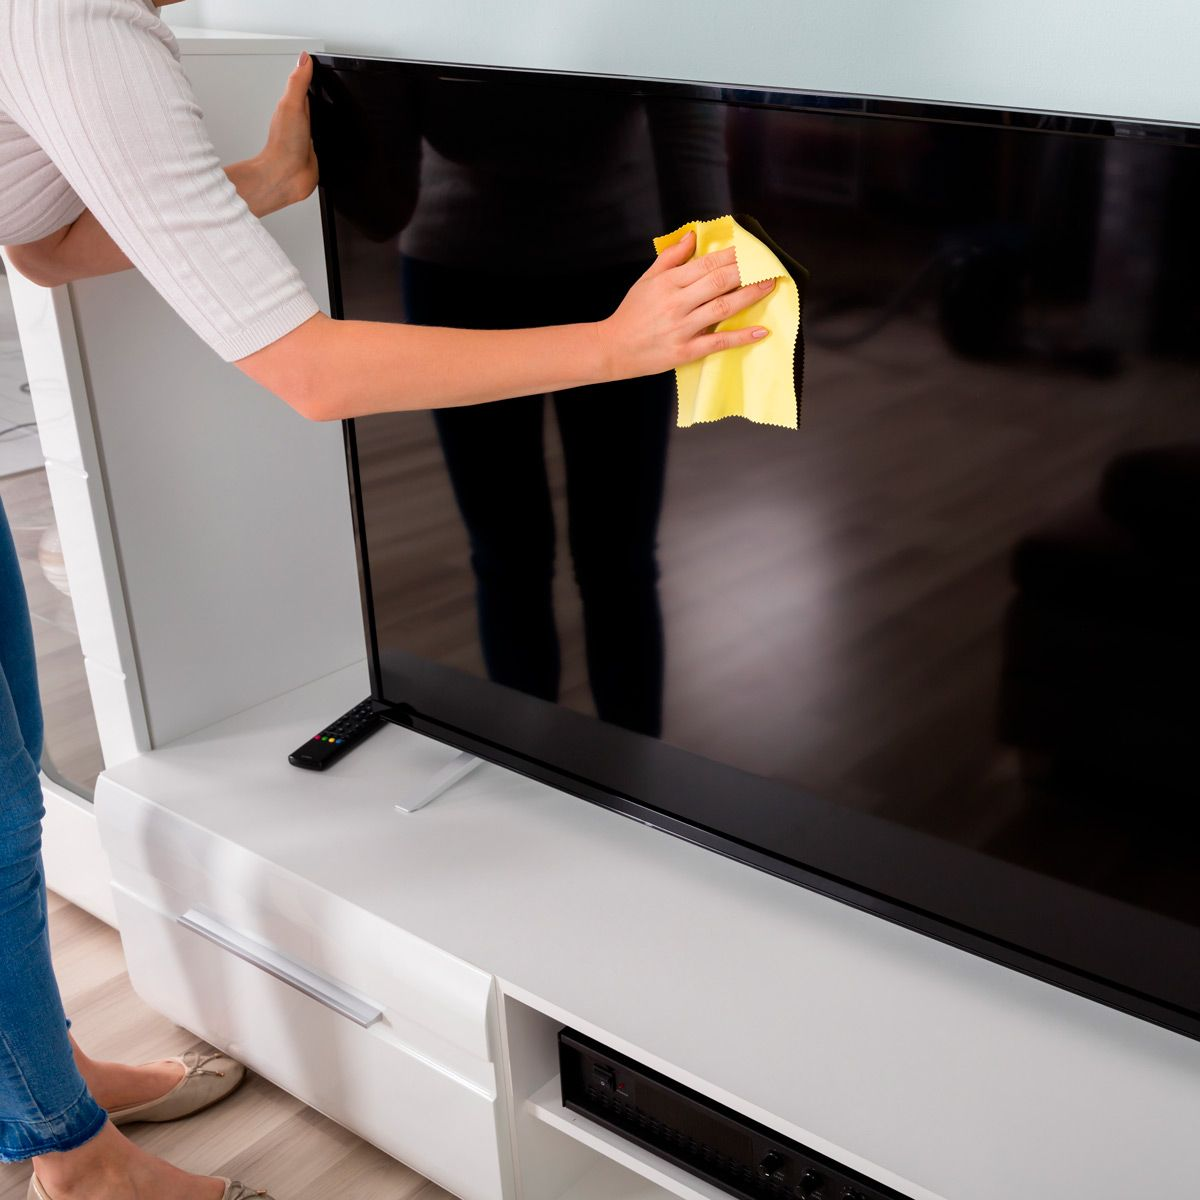 How To Clean A Tv Screen Clean Flat Screen Tv Clean Tv Screen Cleaning Hacks